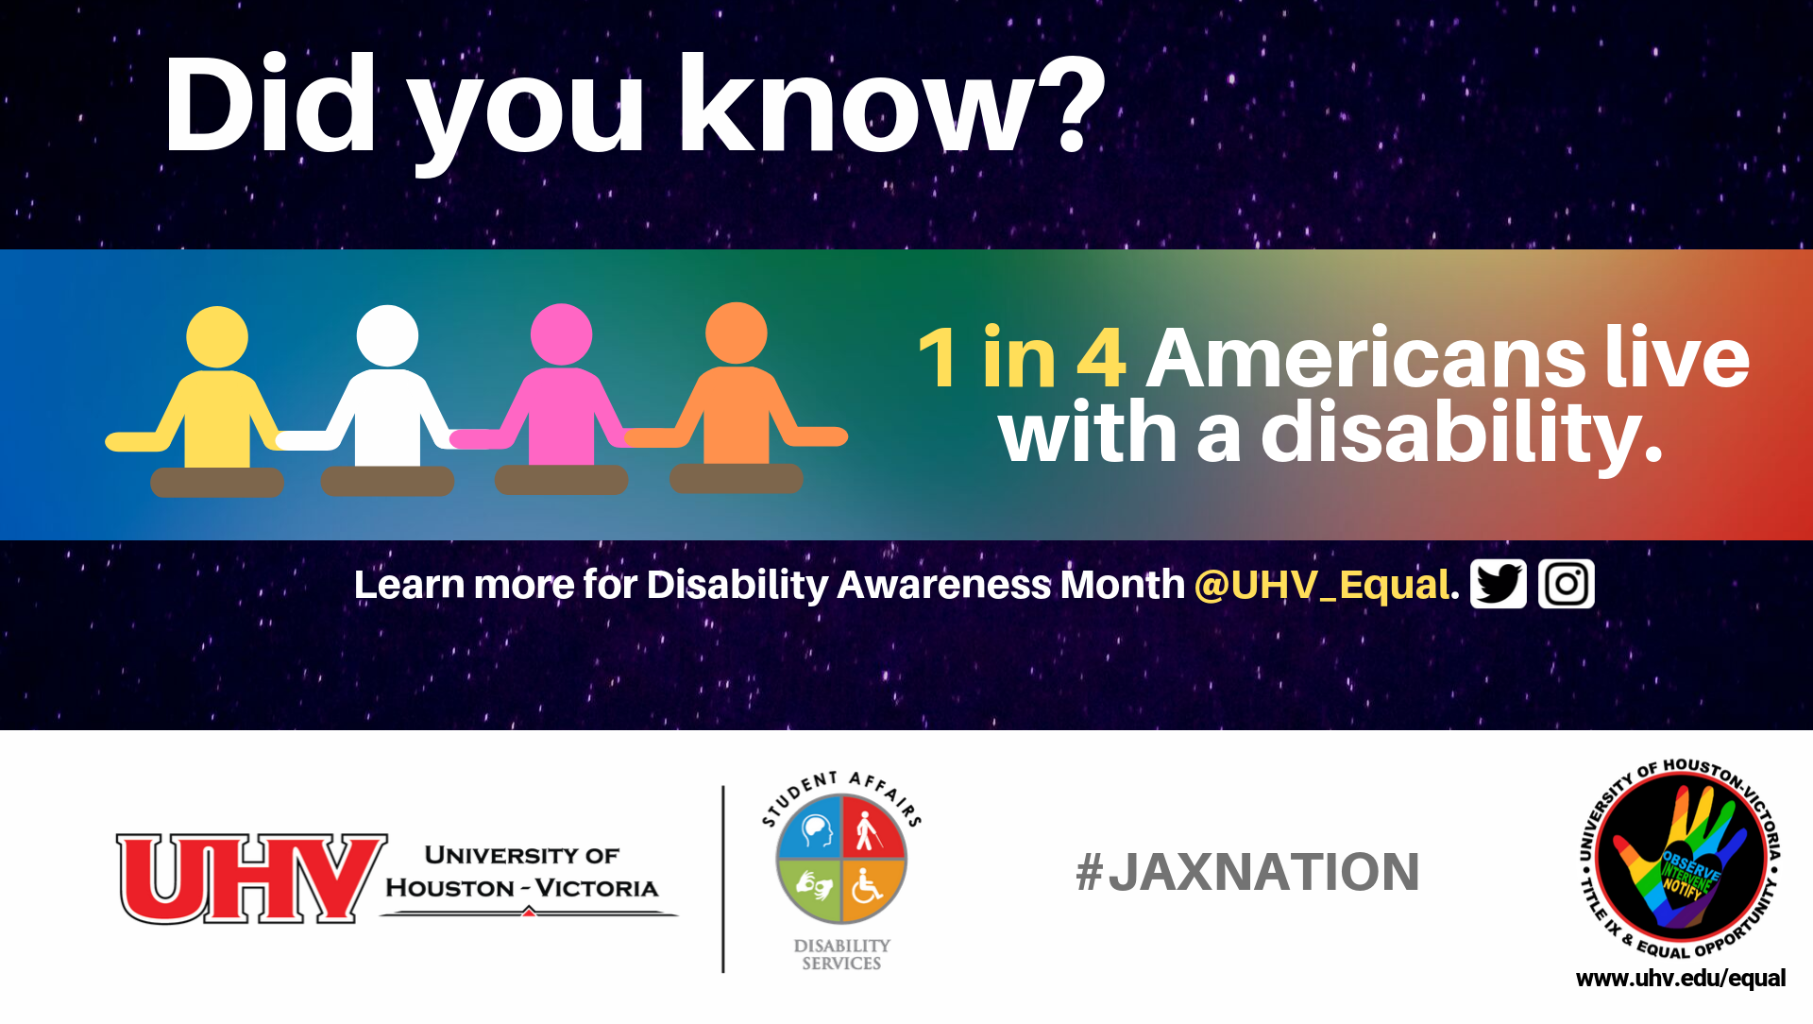 Did you know? 1 in 4 Americans live with a disability. Image of four figurines. UHV Disability Services Logo. Learn more for Disability Awareness Month @UHV_Equal.#jaxnation. University of Houston-Victoria Title IX and Equal Opportunity Logo (rainbow hand with heart insert with words Observe, Intervene, Notify).